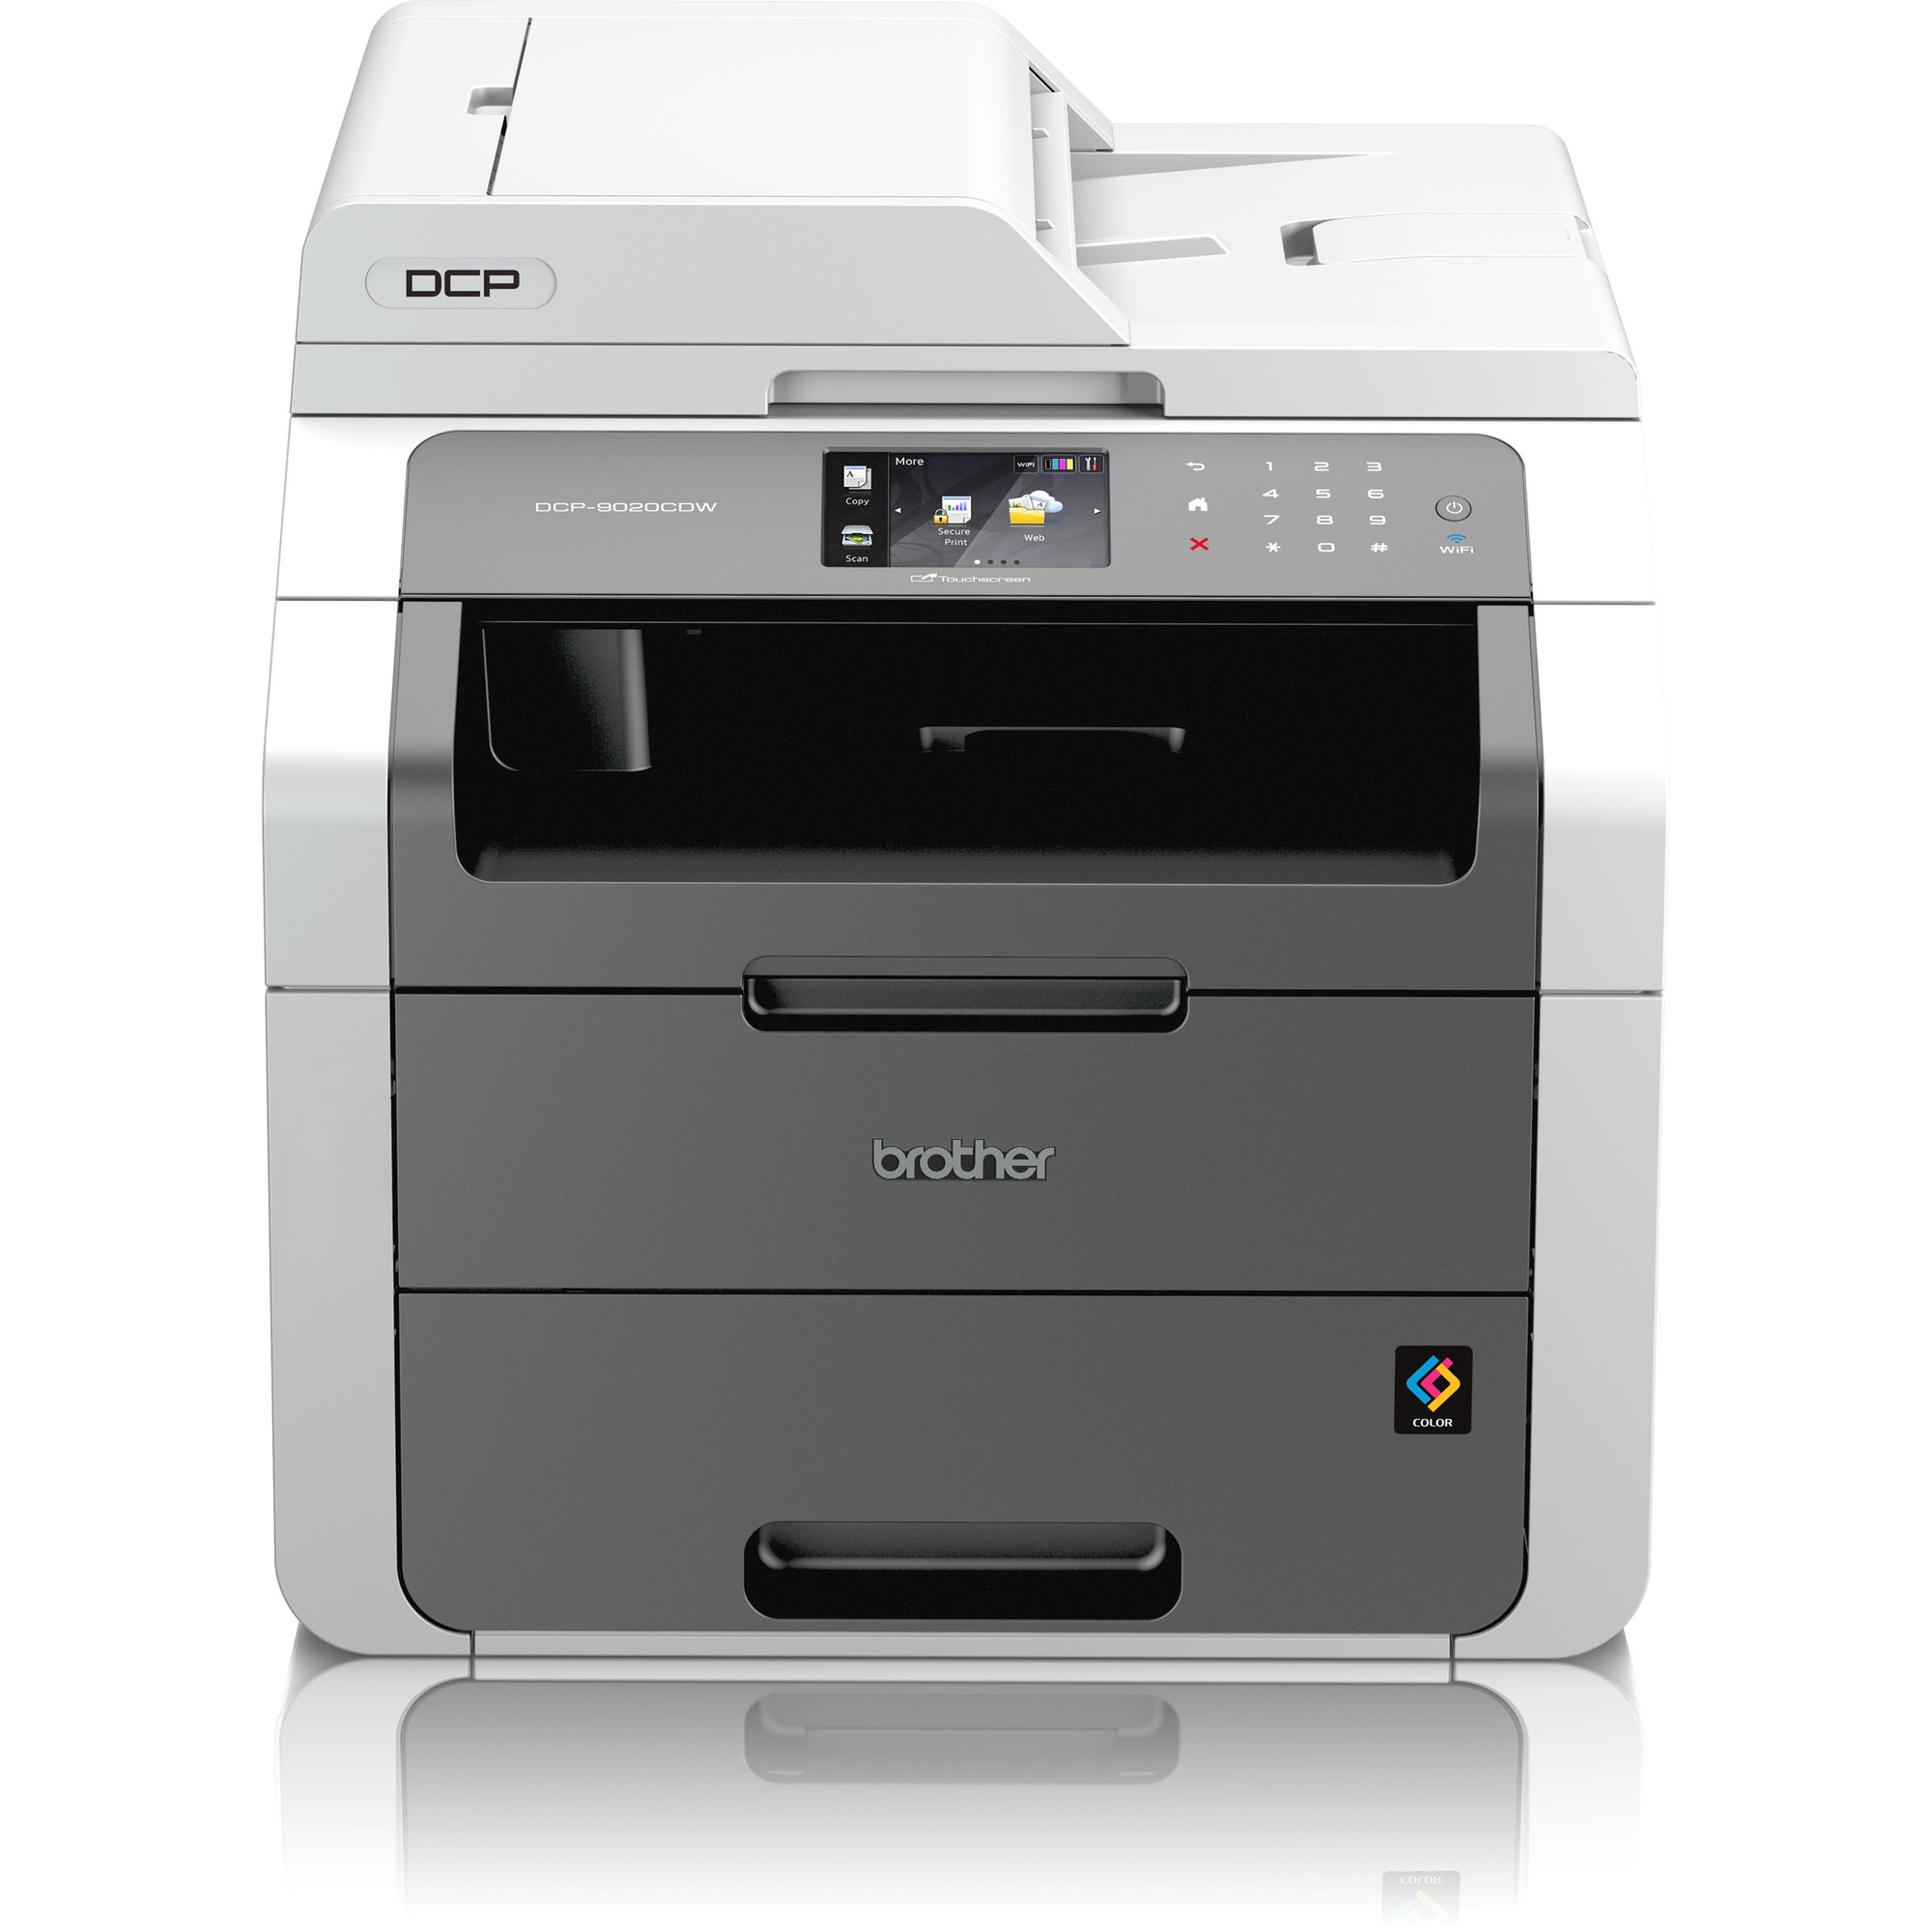 Brother DCP9020CDW MFP 2400X600DPI 18PPM Printer